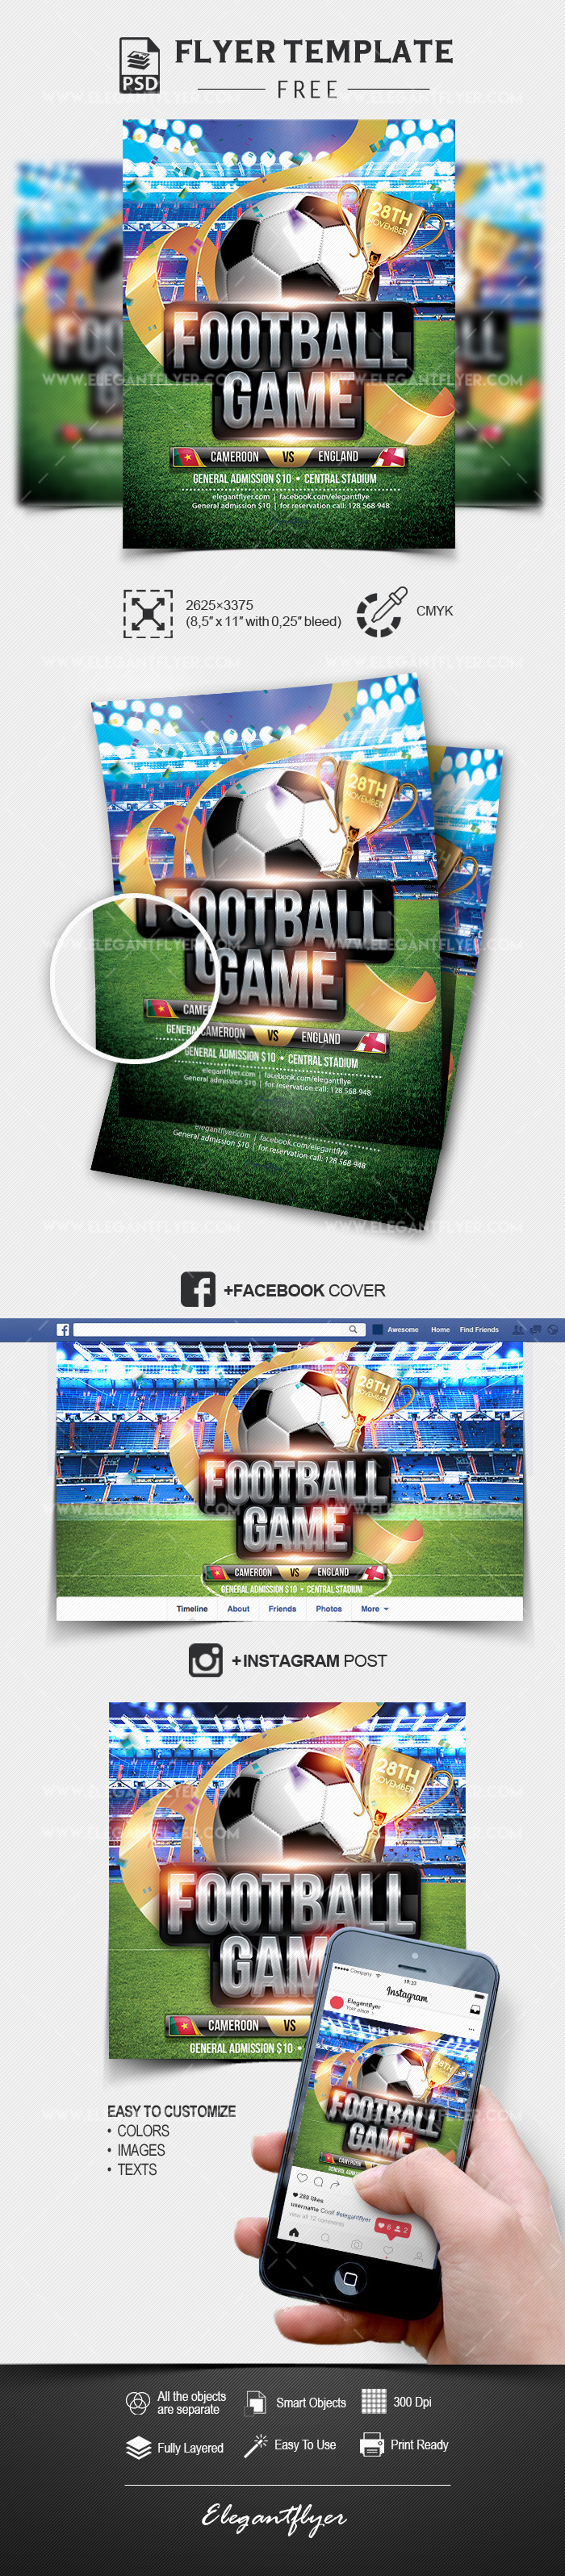 Football Game – Free PSD Flyer Template + Facebook Cover + Instagram Post